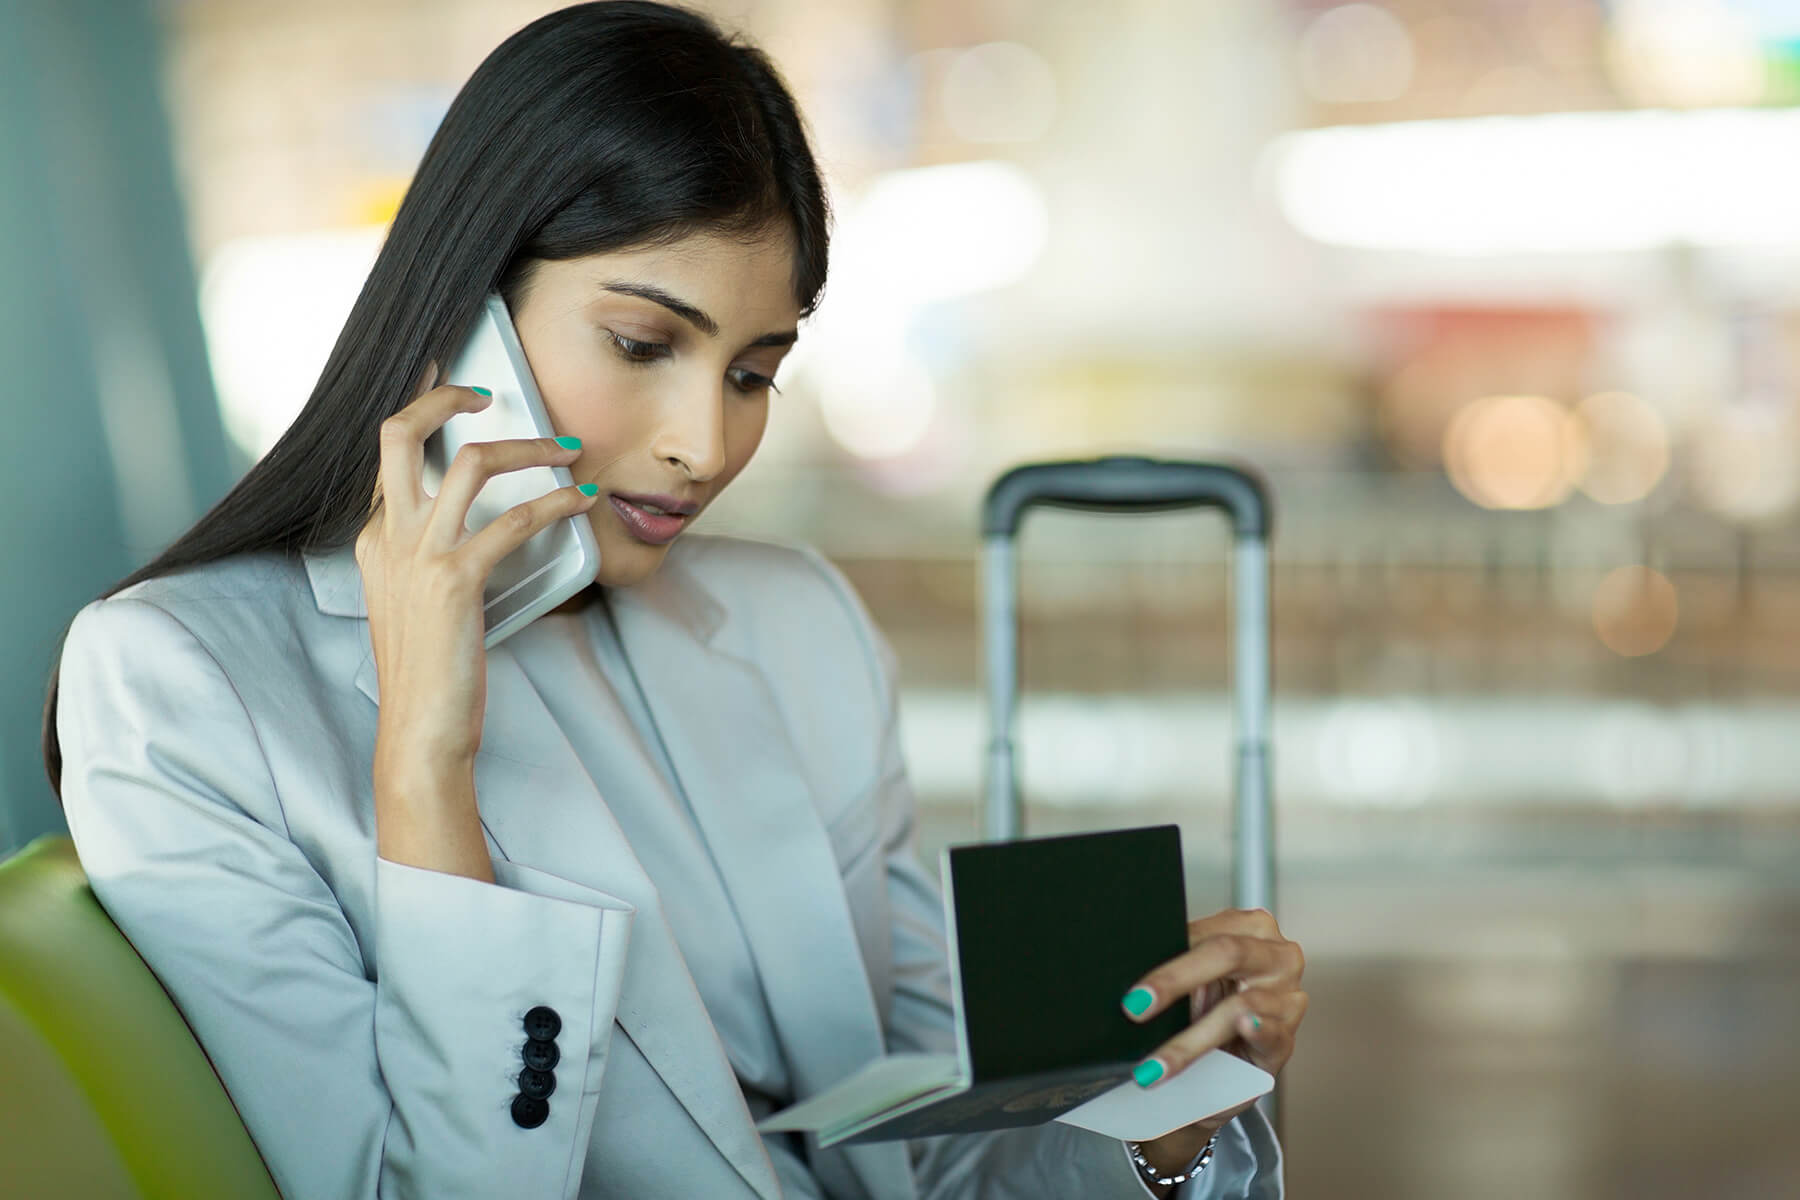 How Should Travel Suppliers Accommodate For Women Business Travelers?